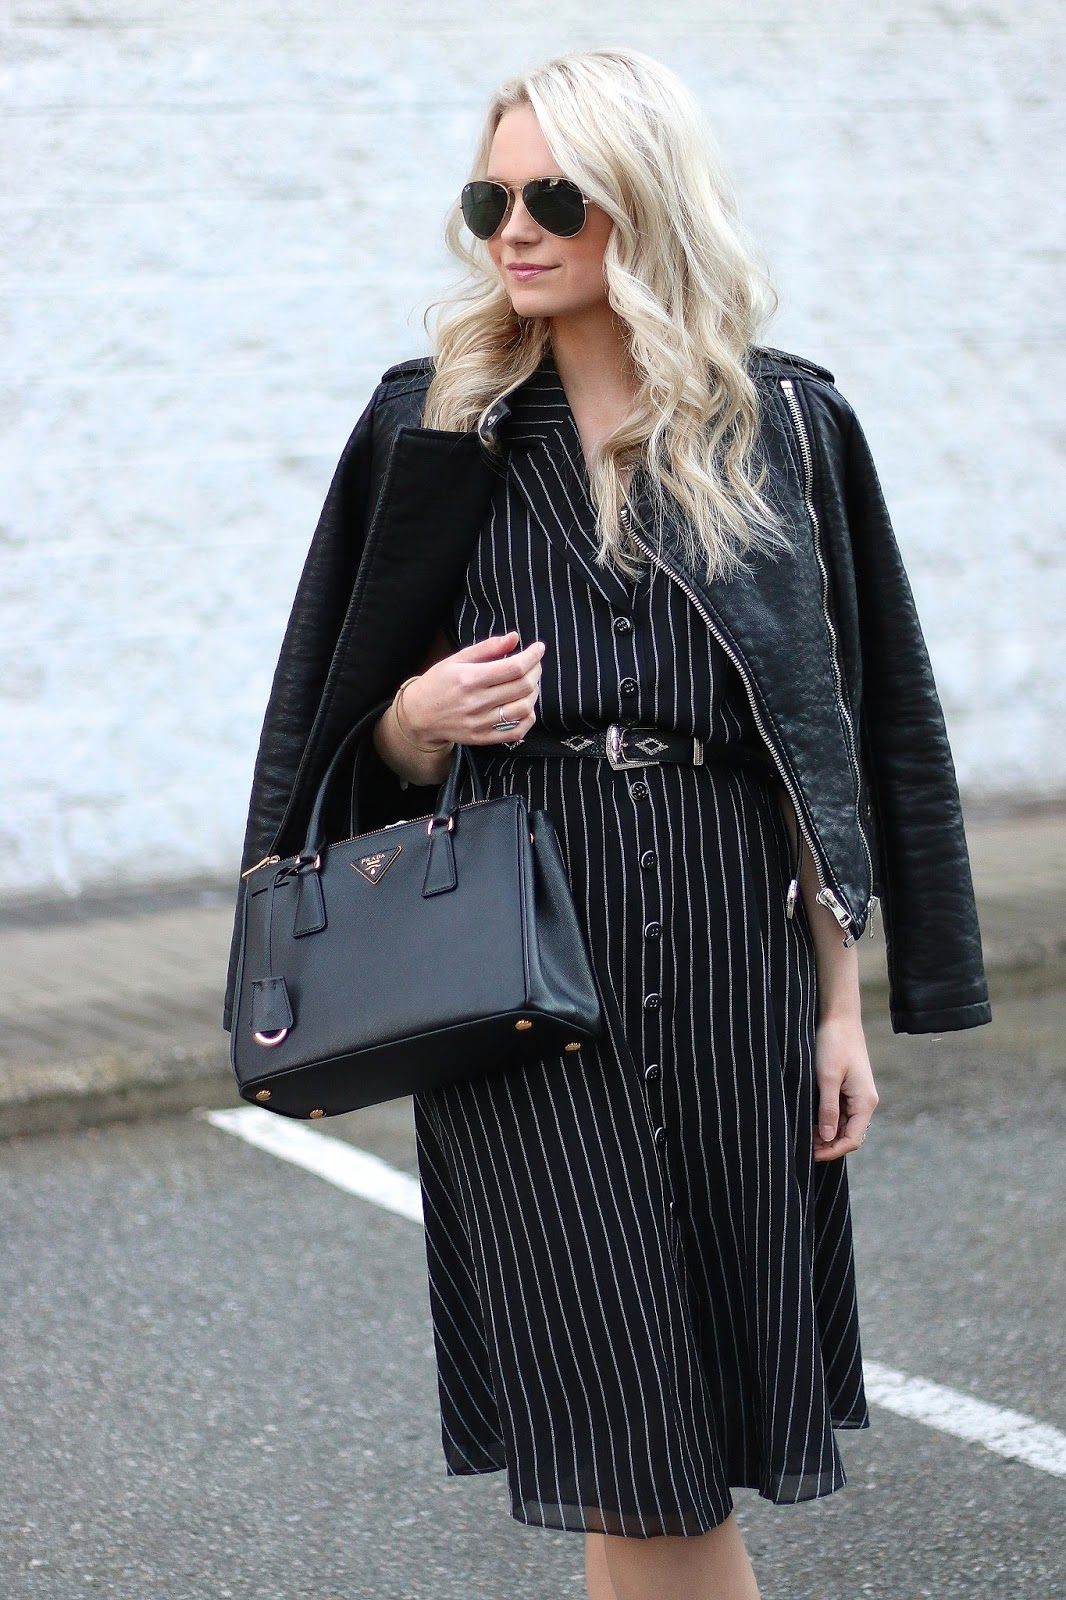 9a188429e0 Prada Saffiano Double Zip Handbag Review Pin this image on Pinterest.  blogger wearing midi pinstripe dress and Prada handbag ...